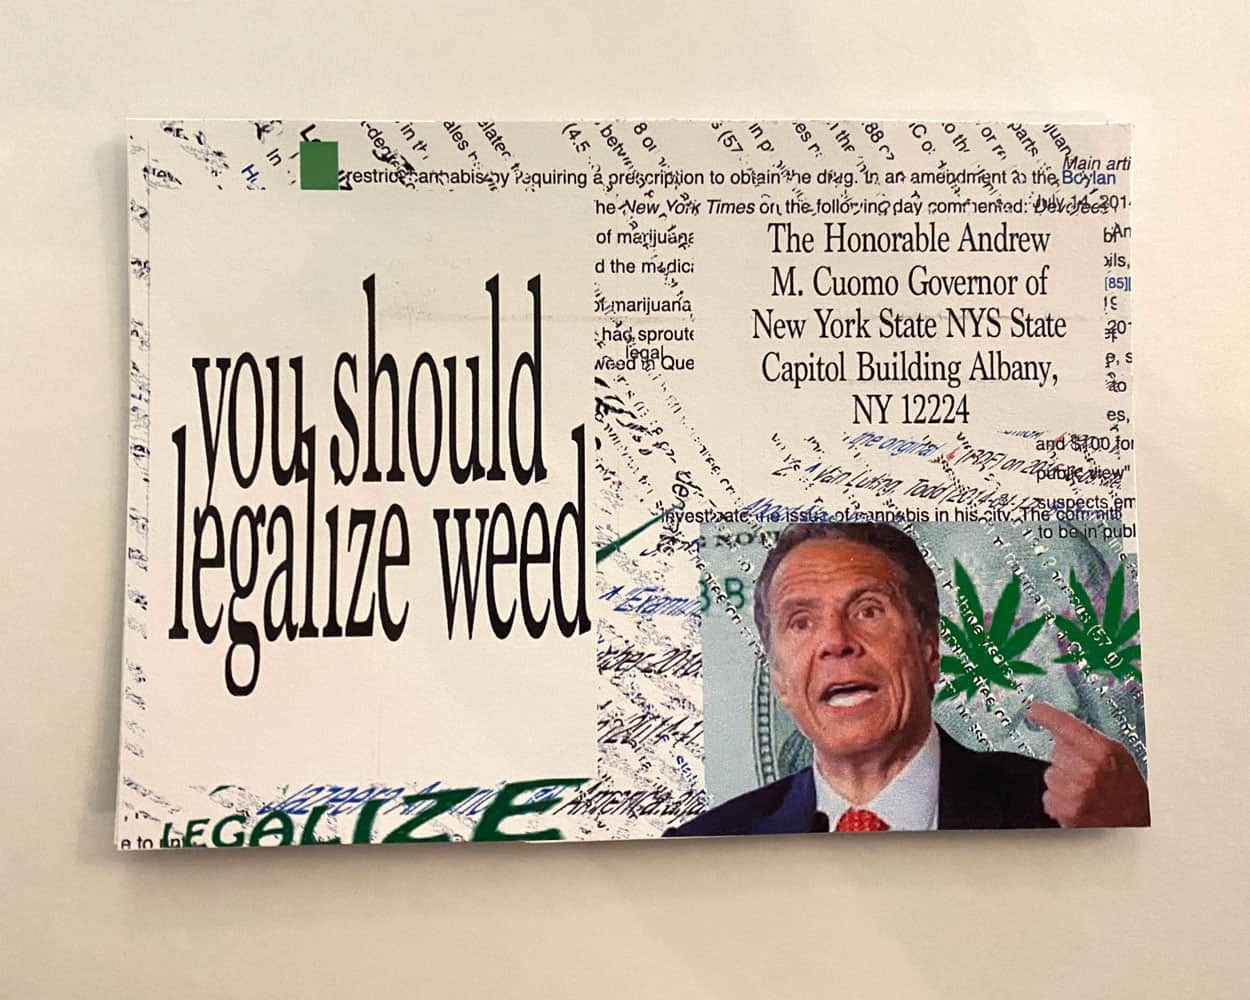 "A postcard with the Text ""You should Legalize weed"" with the image of Andrew Cuomo on the bottom right corner. The text and image is over a distorted text background."